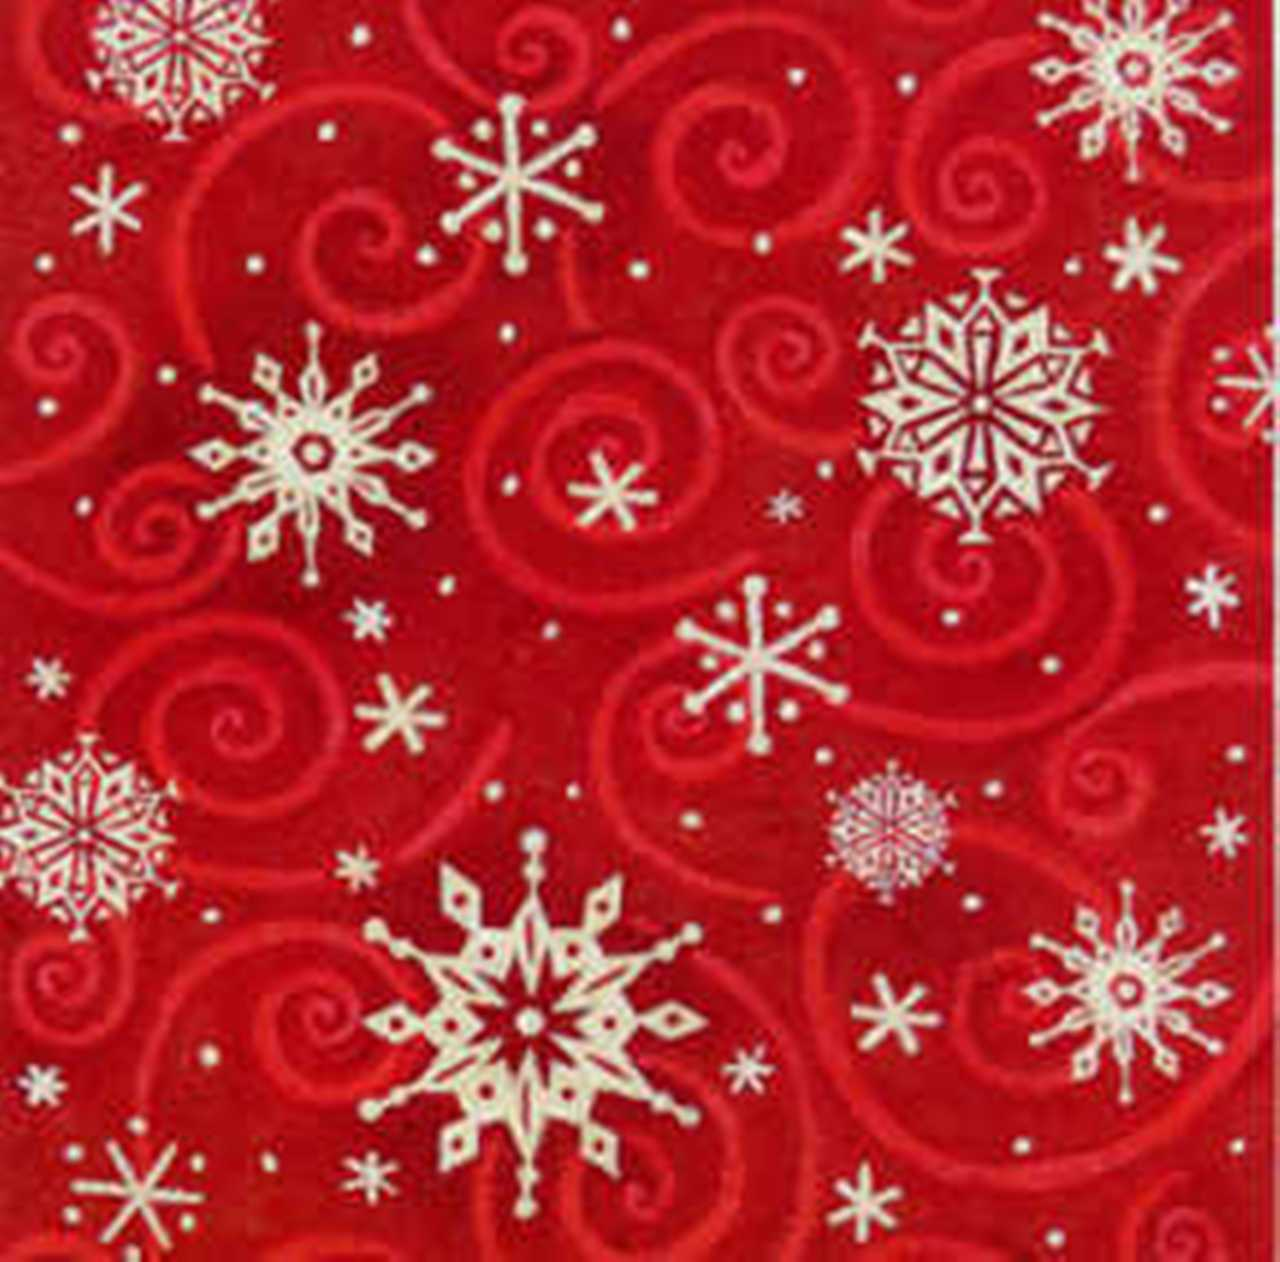 Christmas Paper | Search Results | Calendar 2015